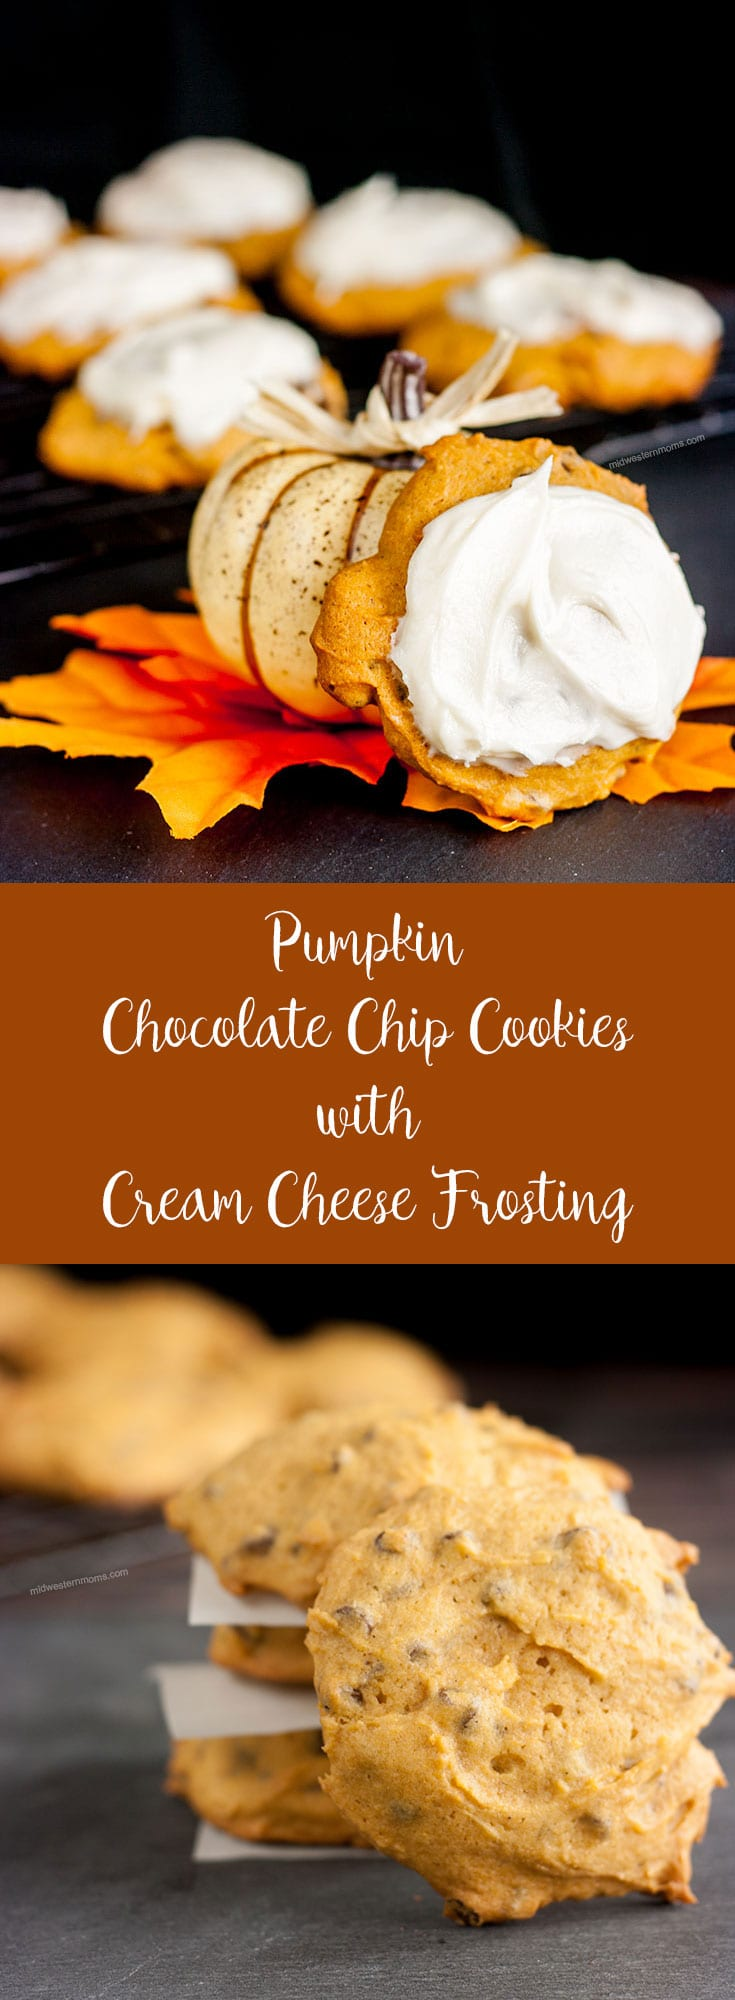 Pumpkin Chocolate Chip Cookies Recipe. Delicious with or without homemade cream cheese frosting.